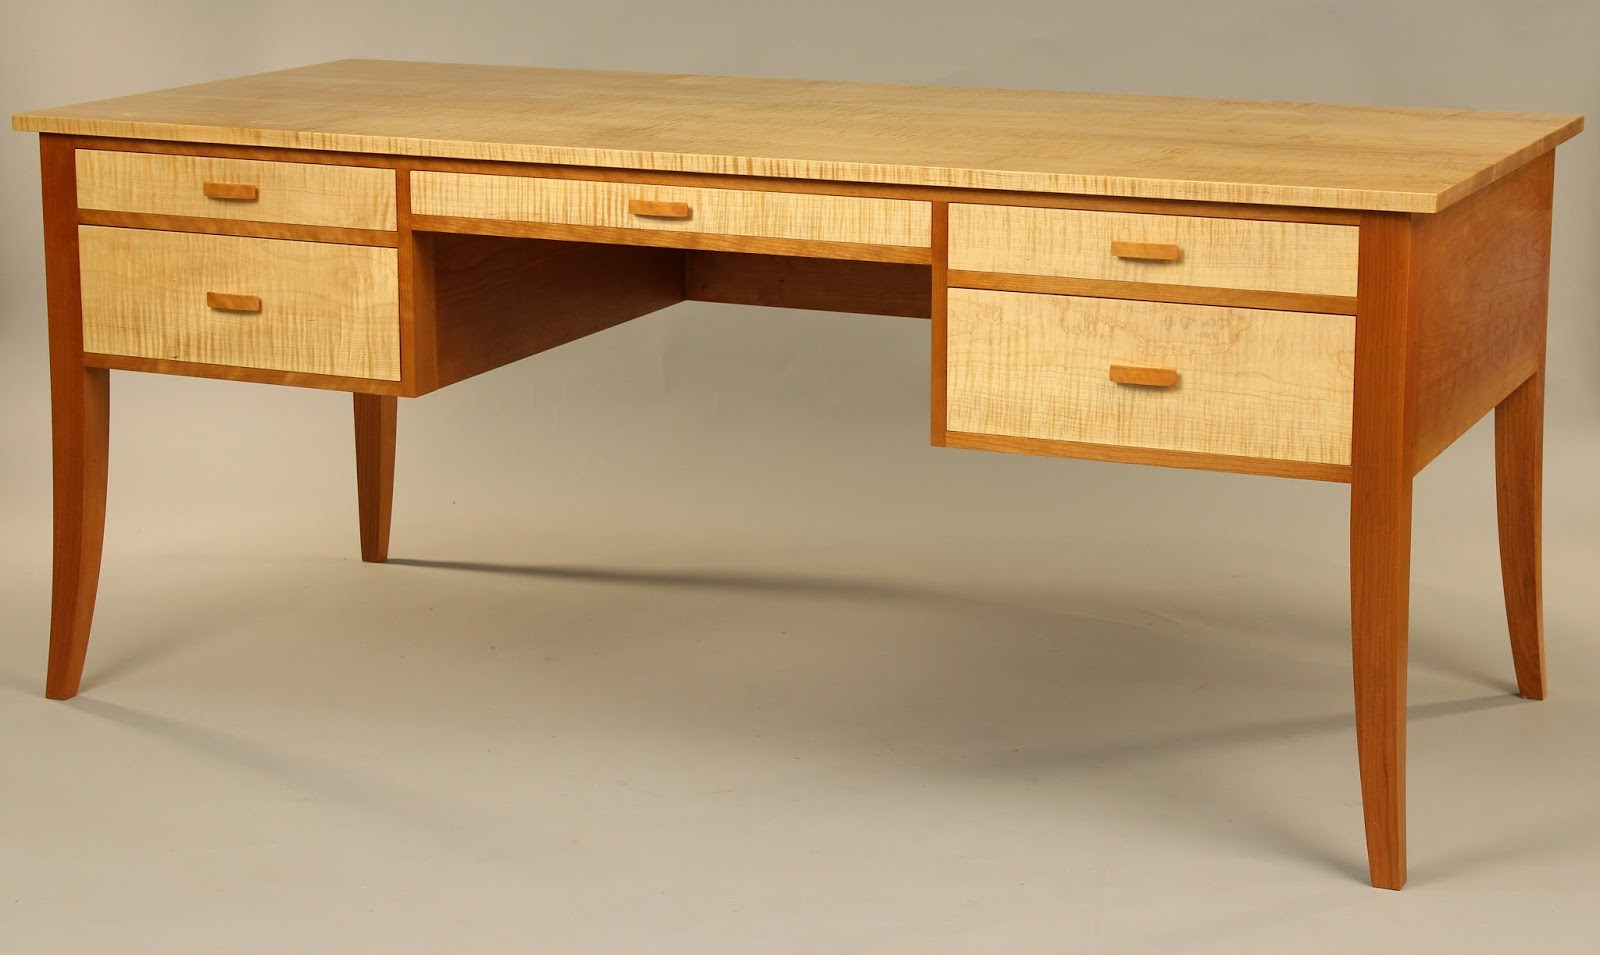 Matthew Wolfe Furniture Maker